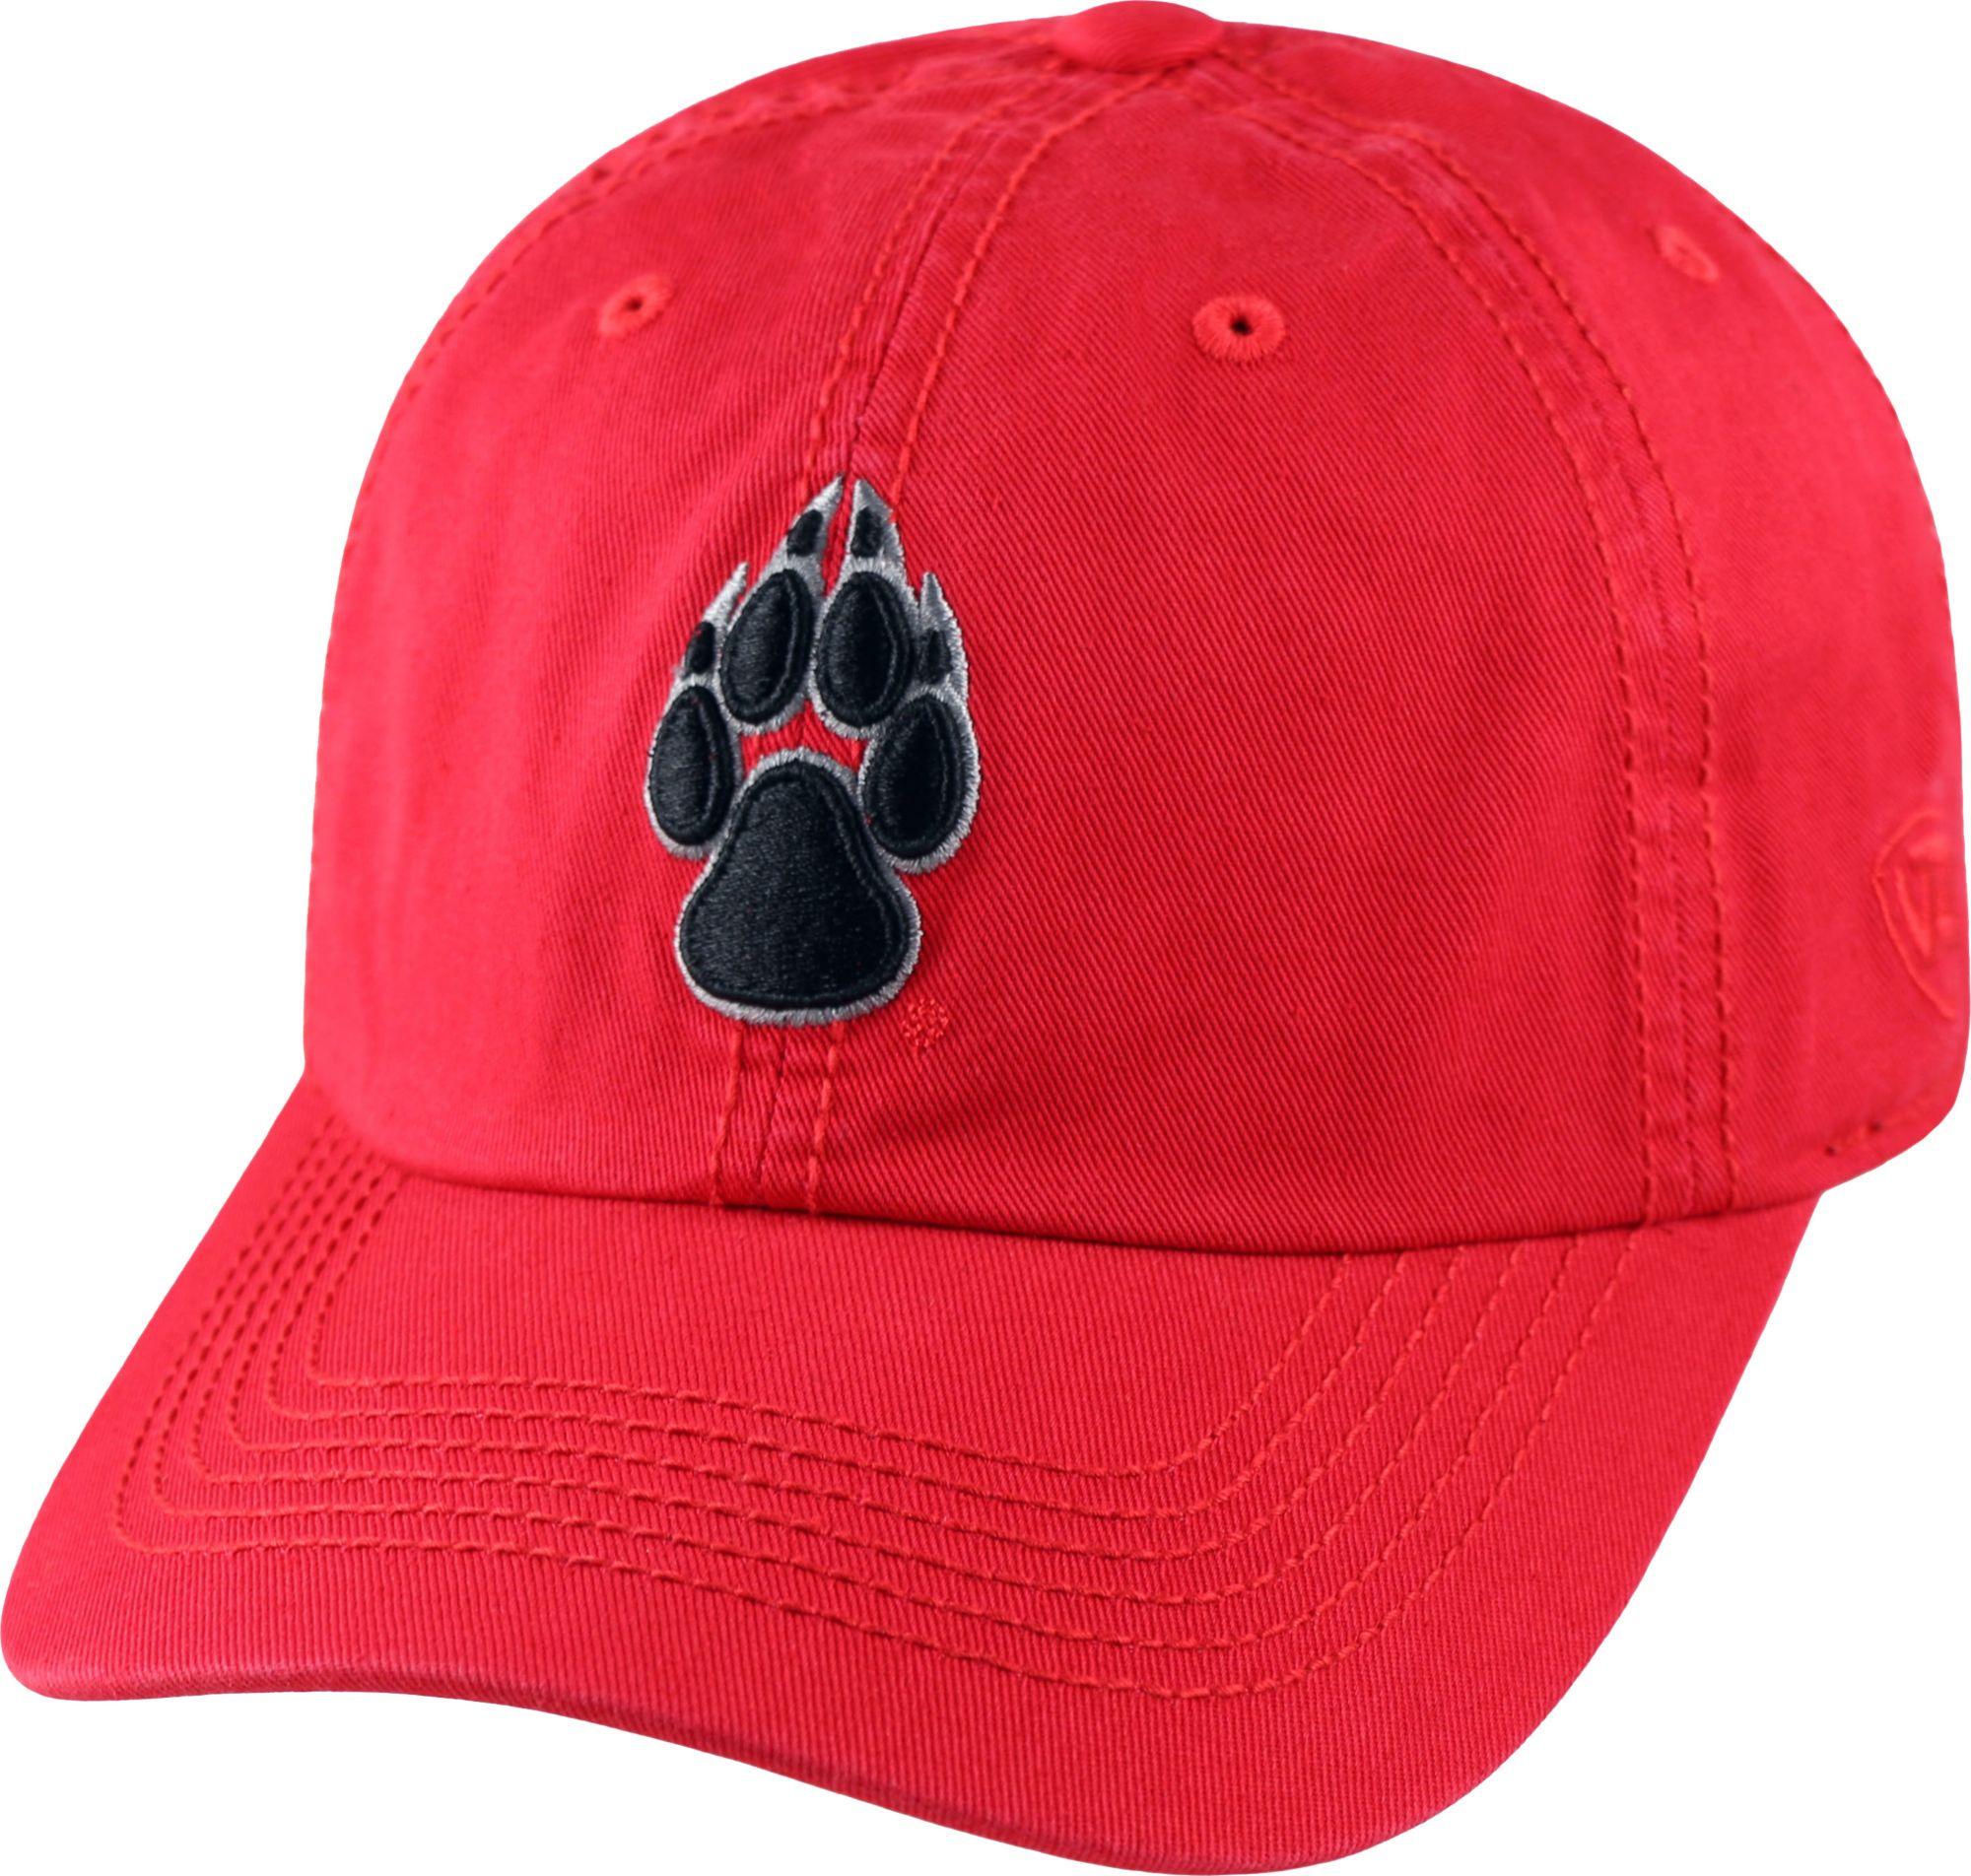 detailed look 6eeae 76774 discount top of the world mens new mexico lobos cherry crew adjustable hat  b14d8 122a5